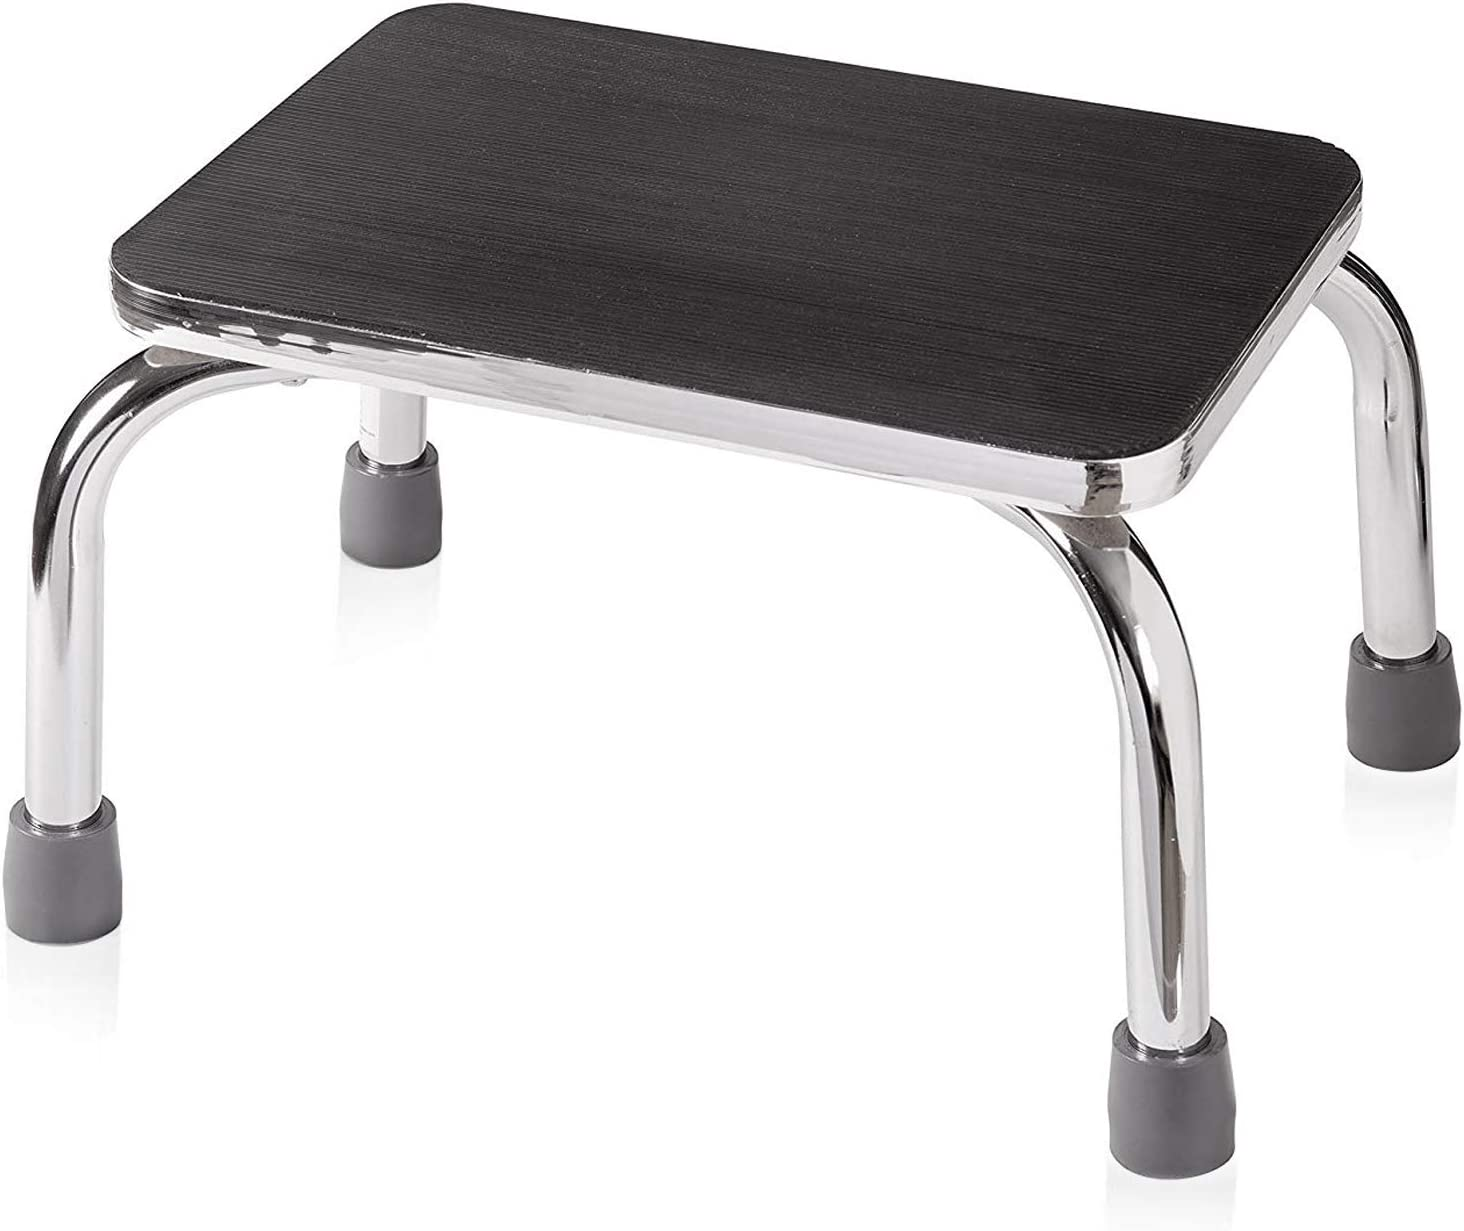 Cheap sale DMI Step Stool overseas for Adults and Stepping Metal Duty Seniors Heavy